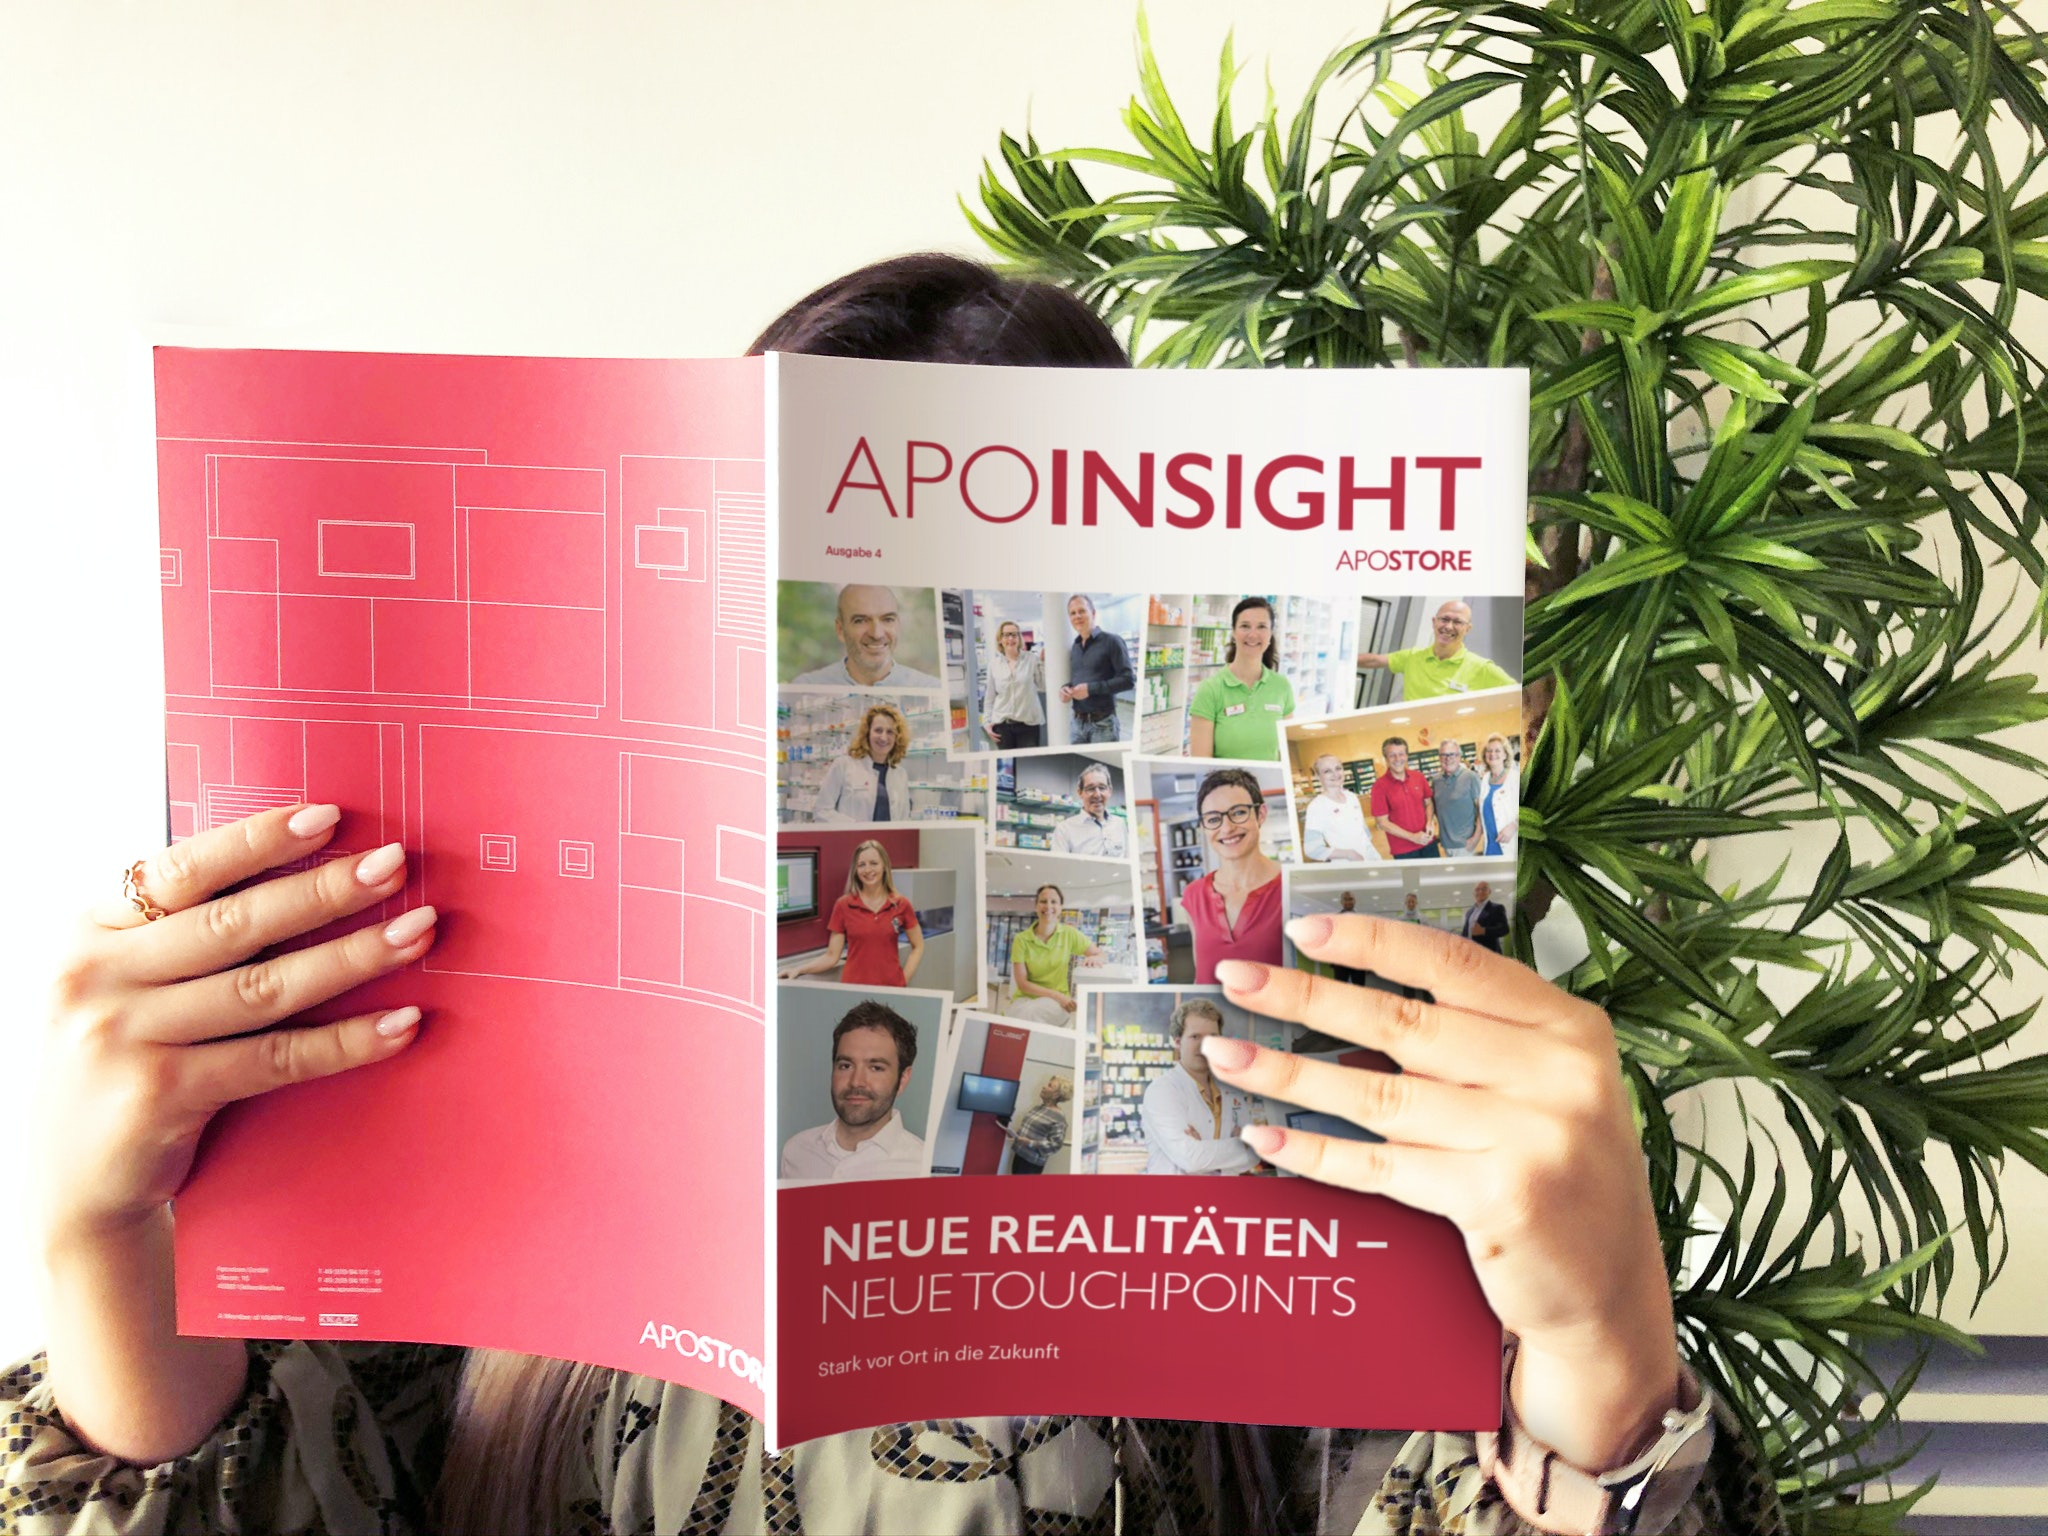 Apostore Apoinsight 4 In Hand